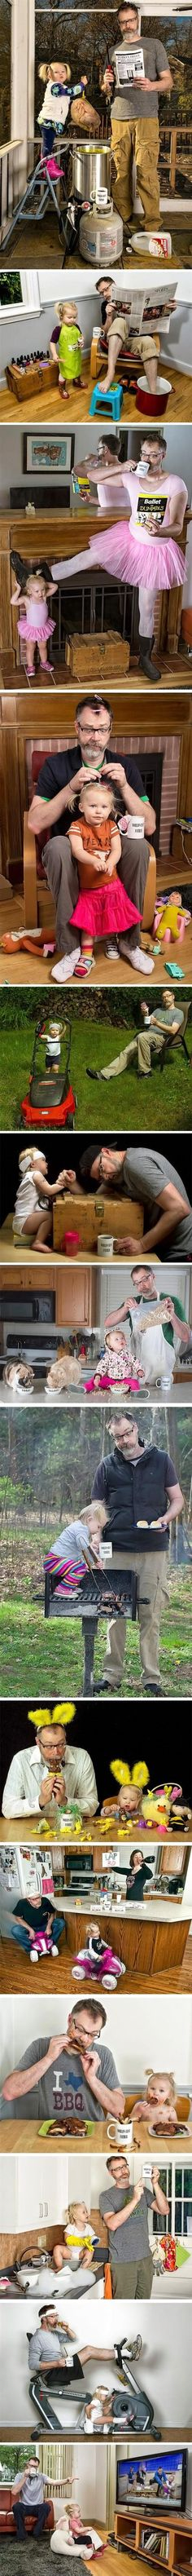 Best Dad Ever! Robert and Lil will have to do a photo shoot like this